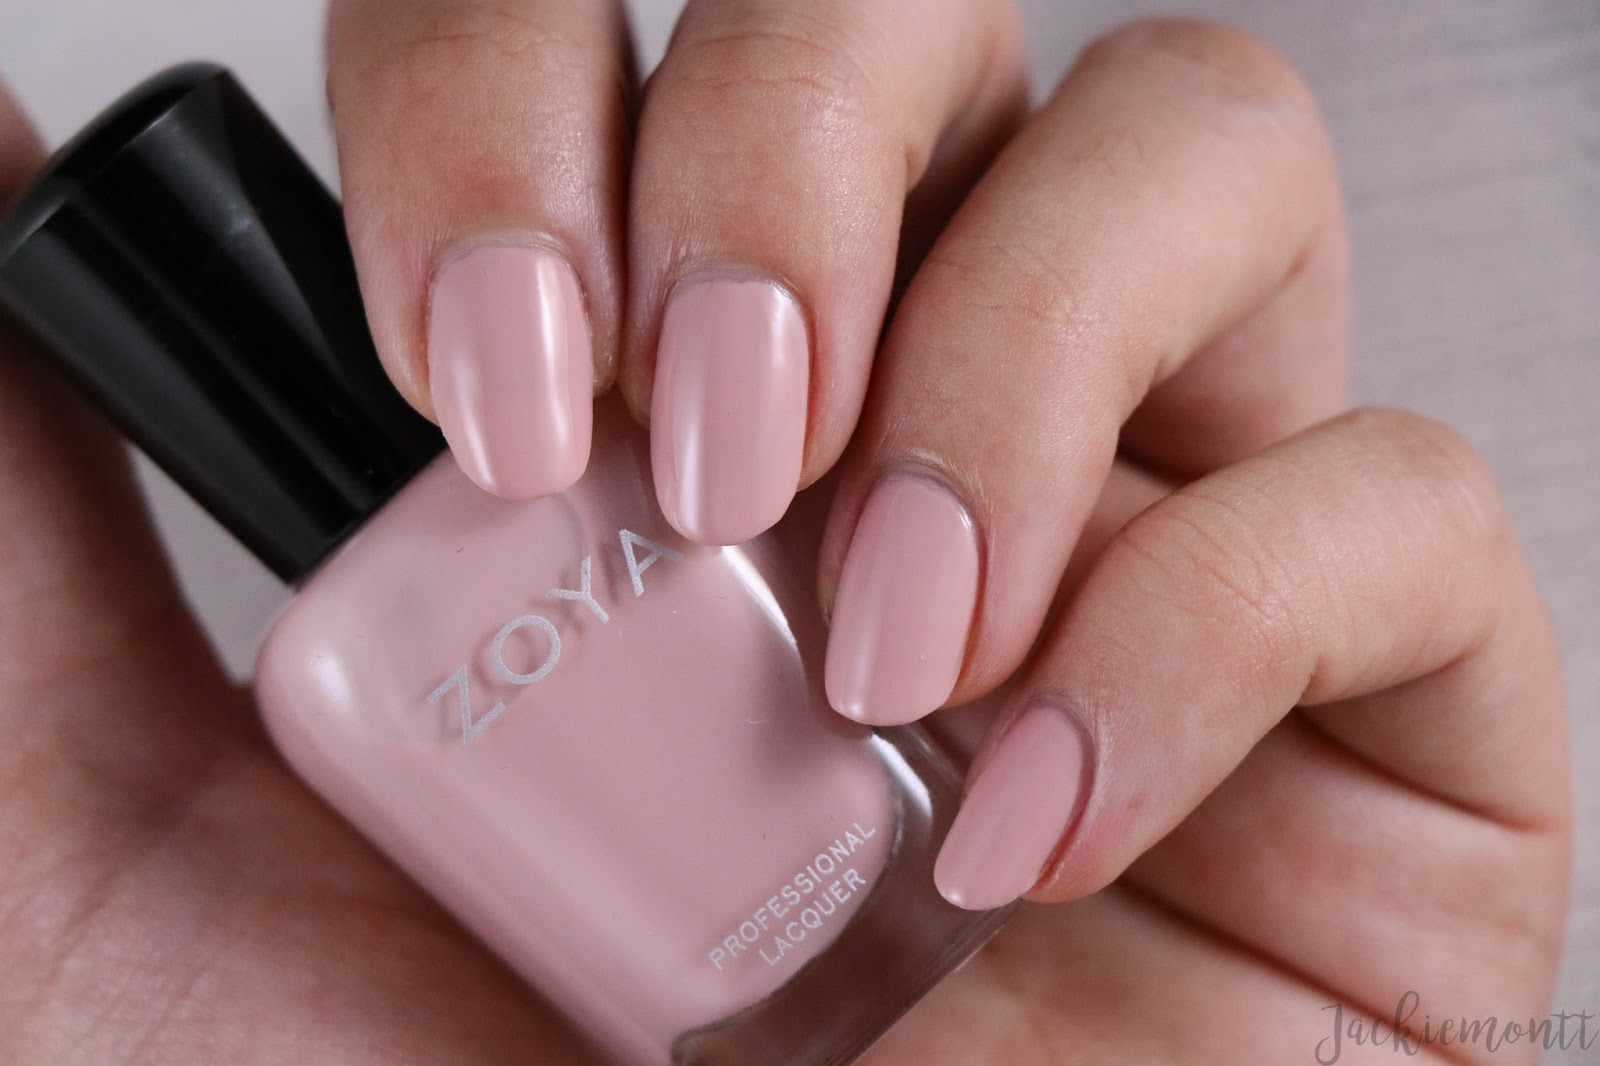 Avril This Is A Neutral Pink Cream With Light Brown Undertones And I Was Surprised At How Nicely Color Looked On The Nail